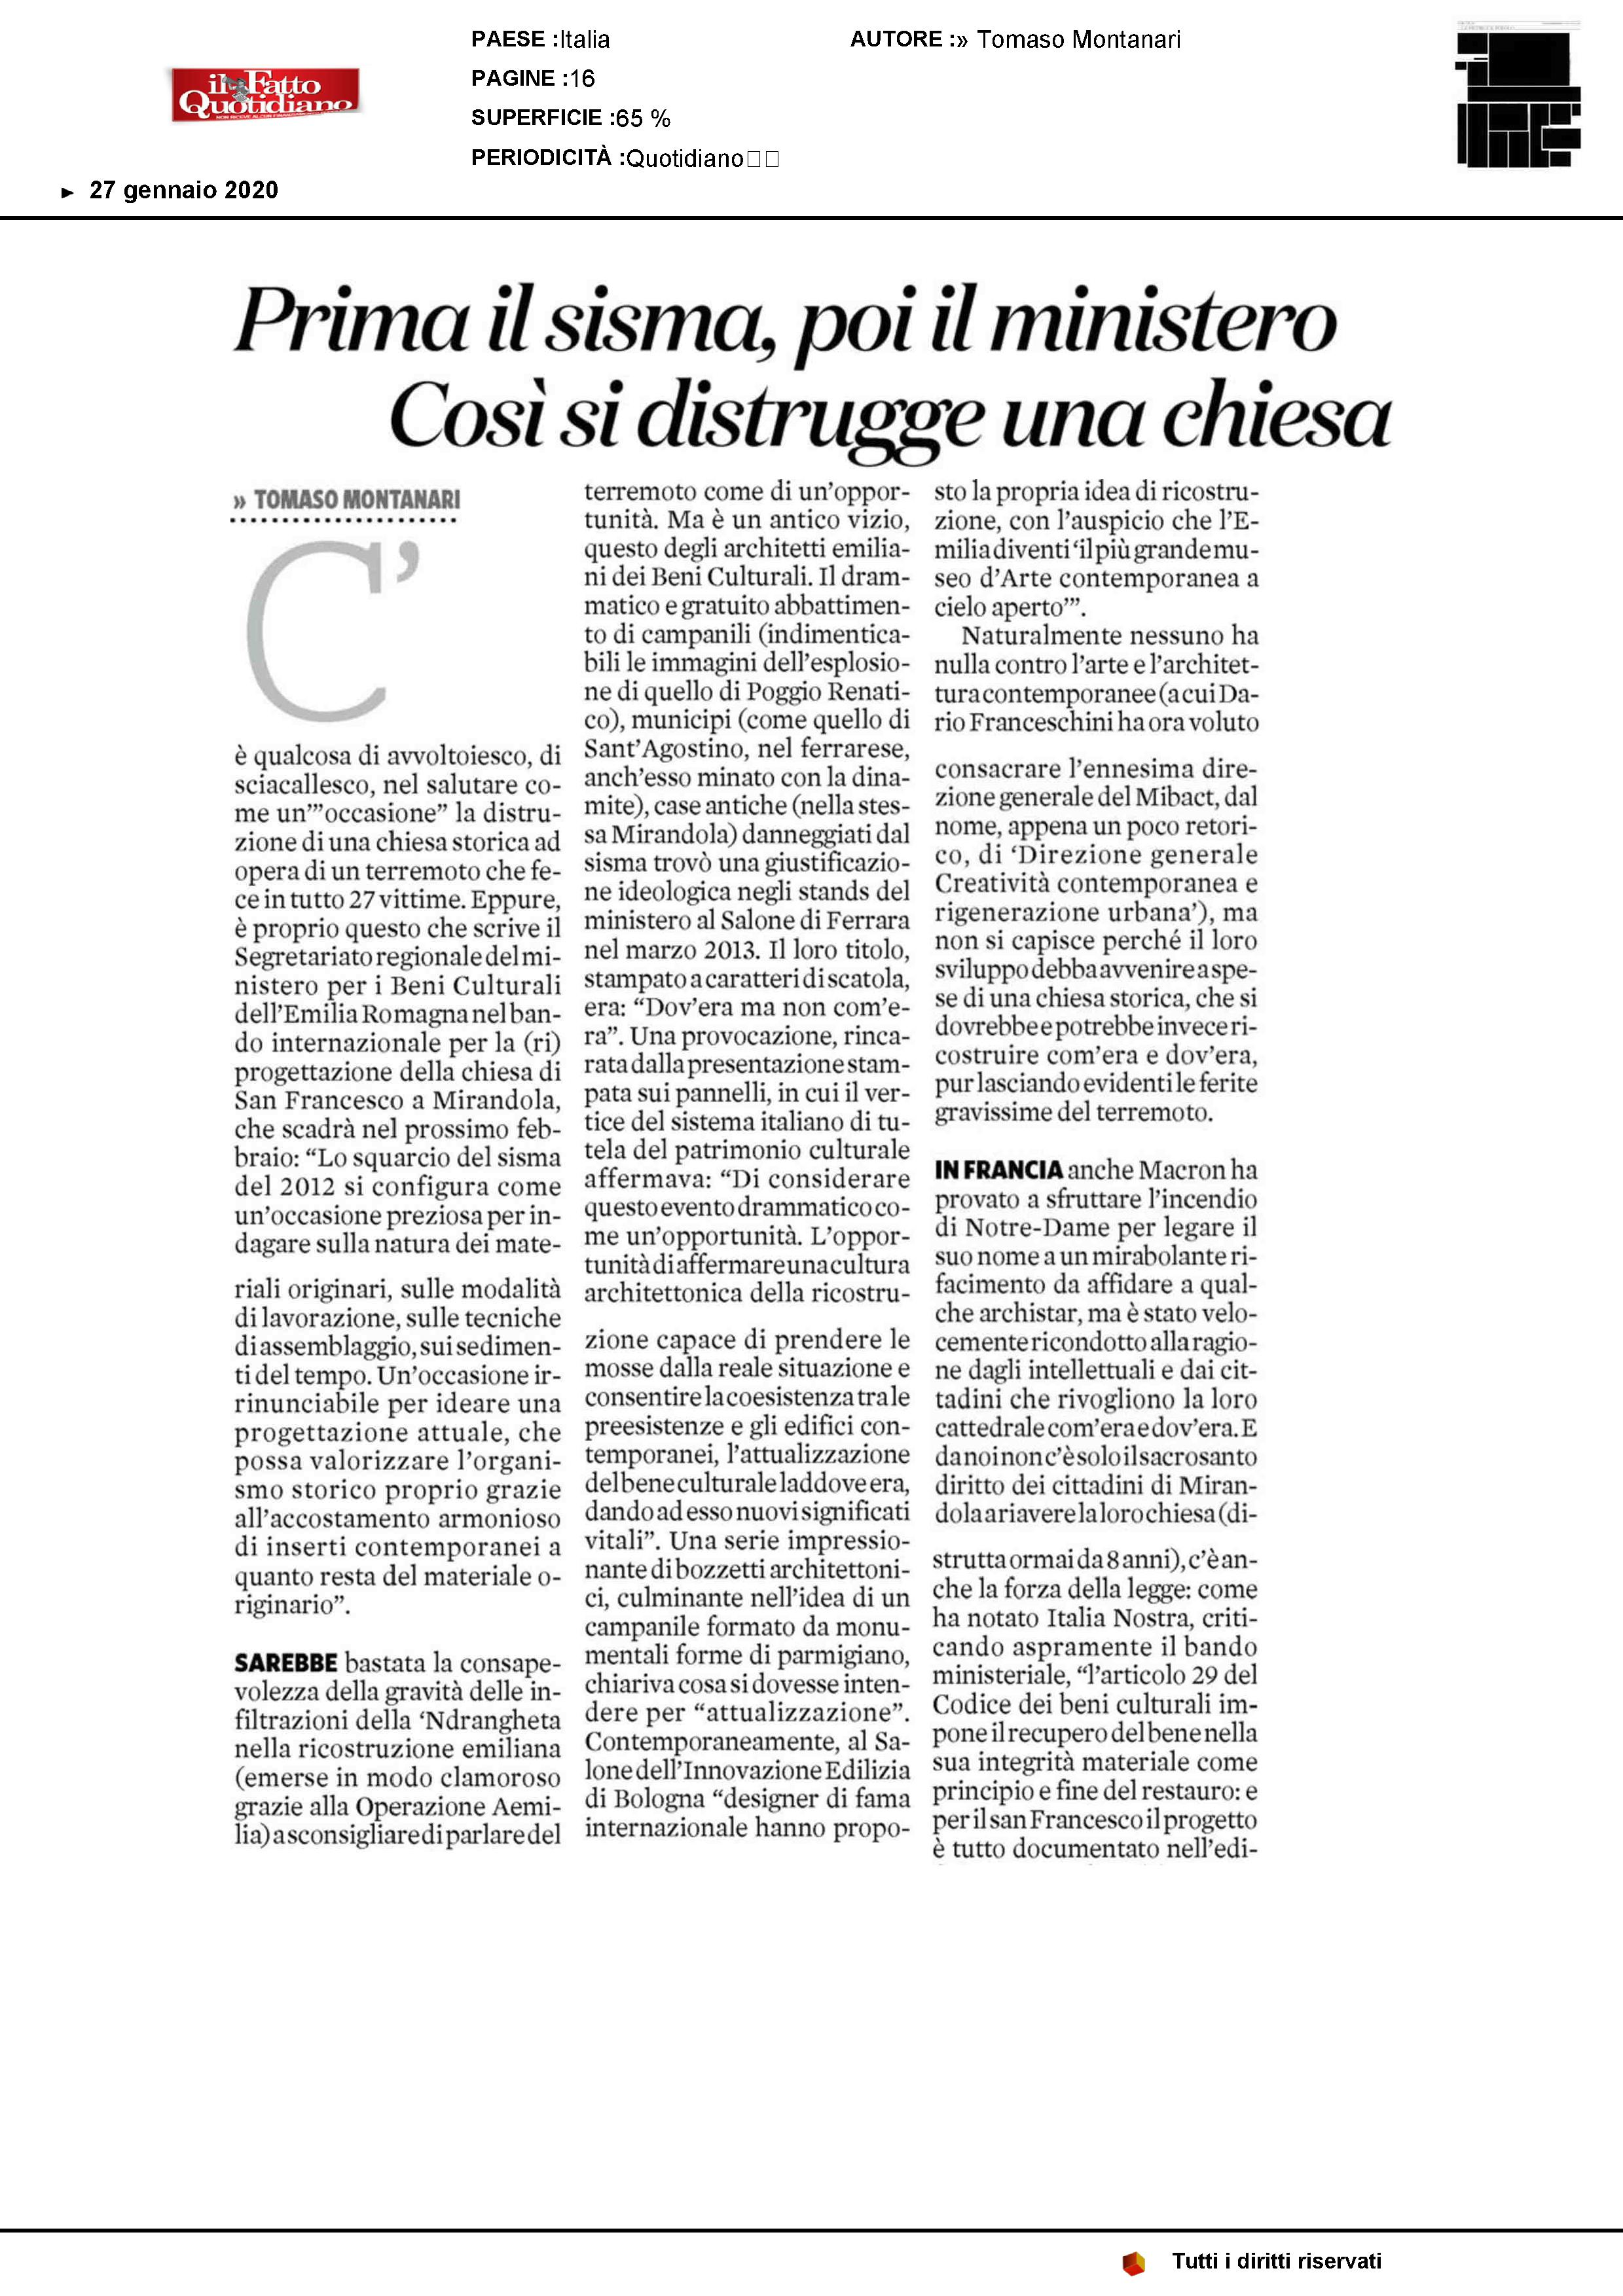 Il_Fatto_Quotidiano_16_20200126230000_2